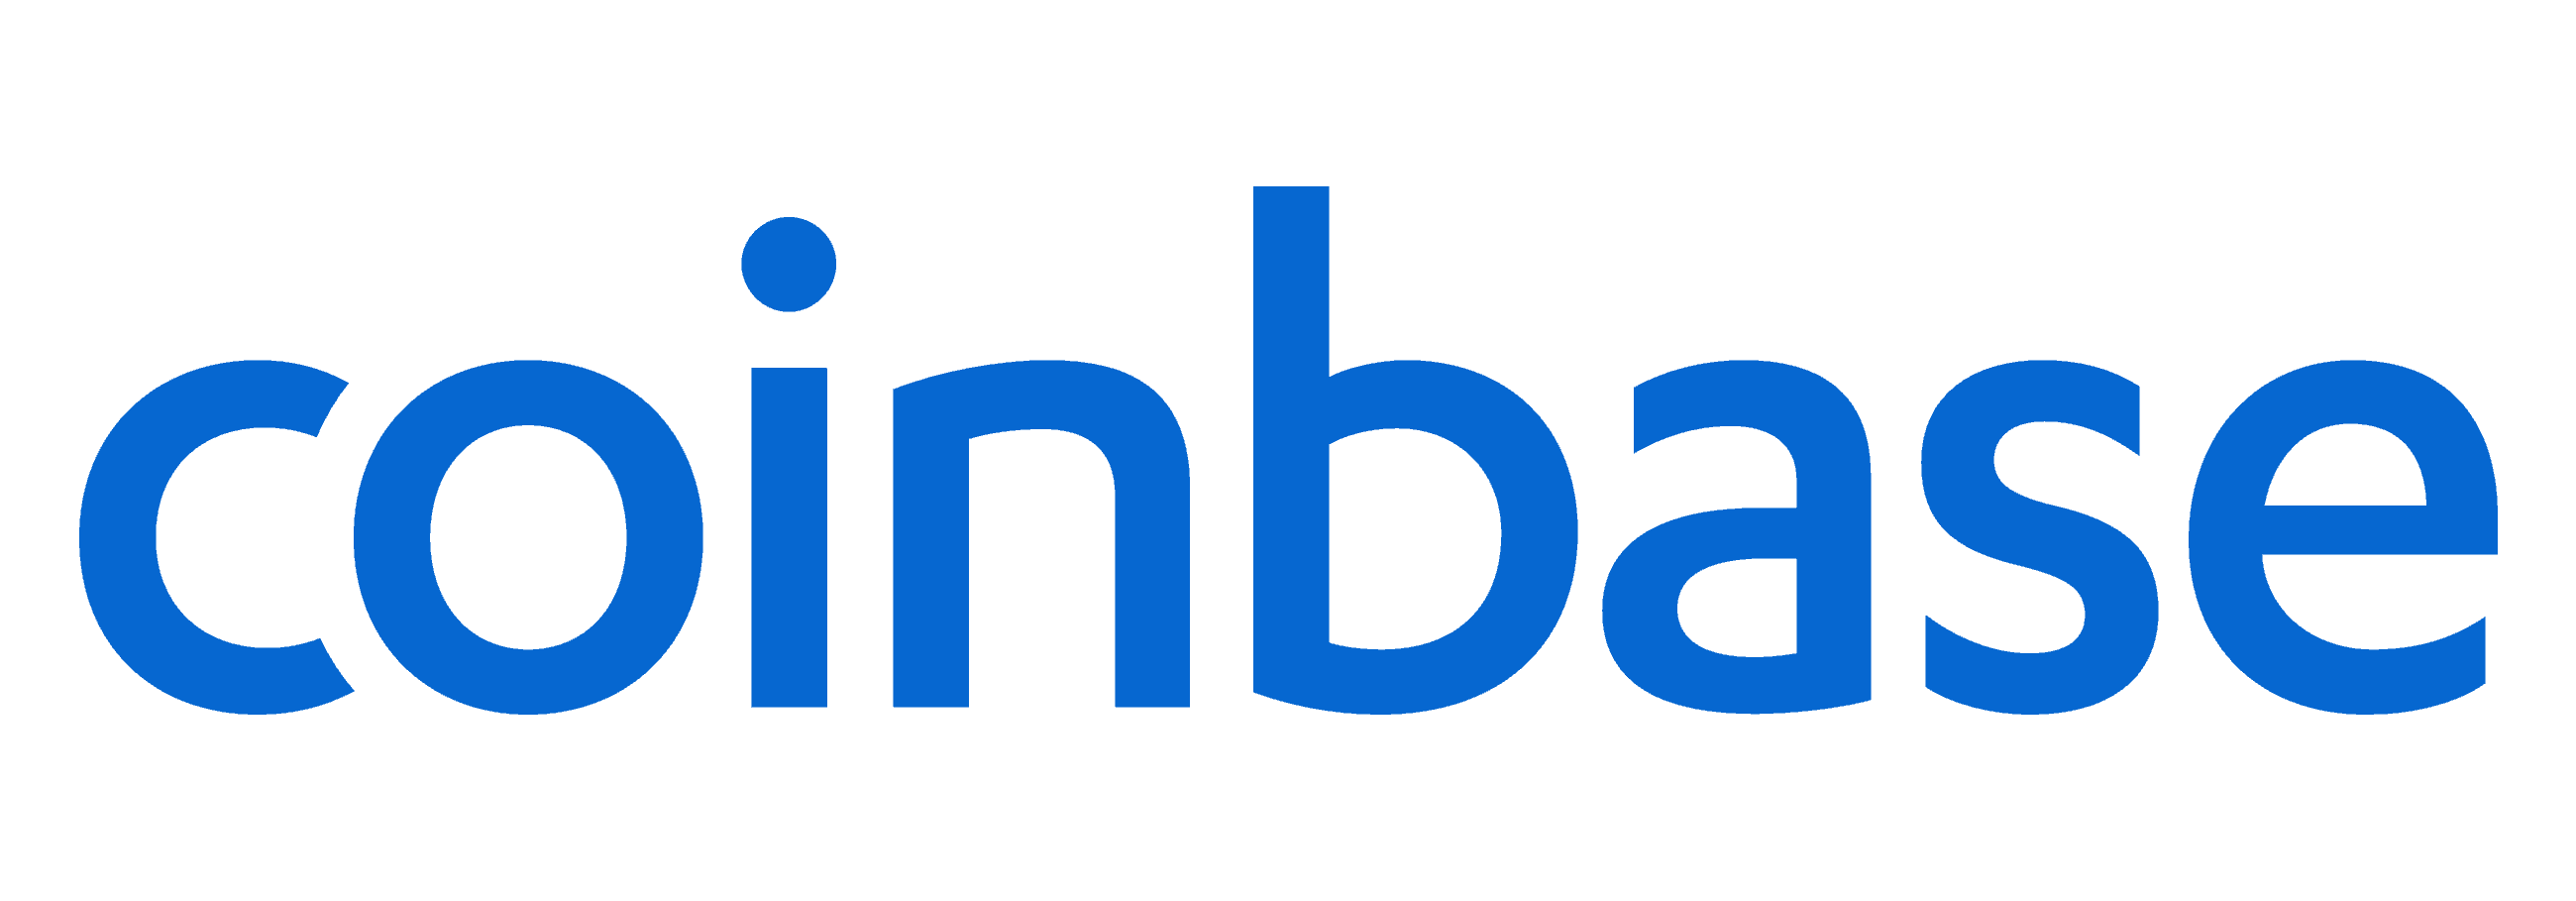 coinbase logo in blue